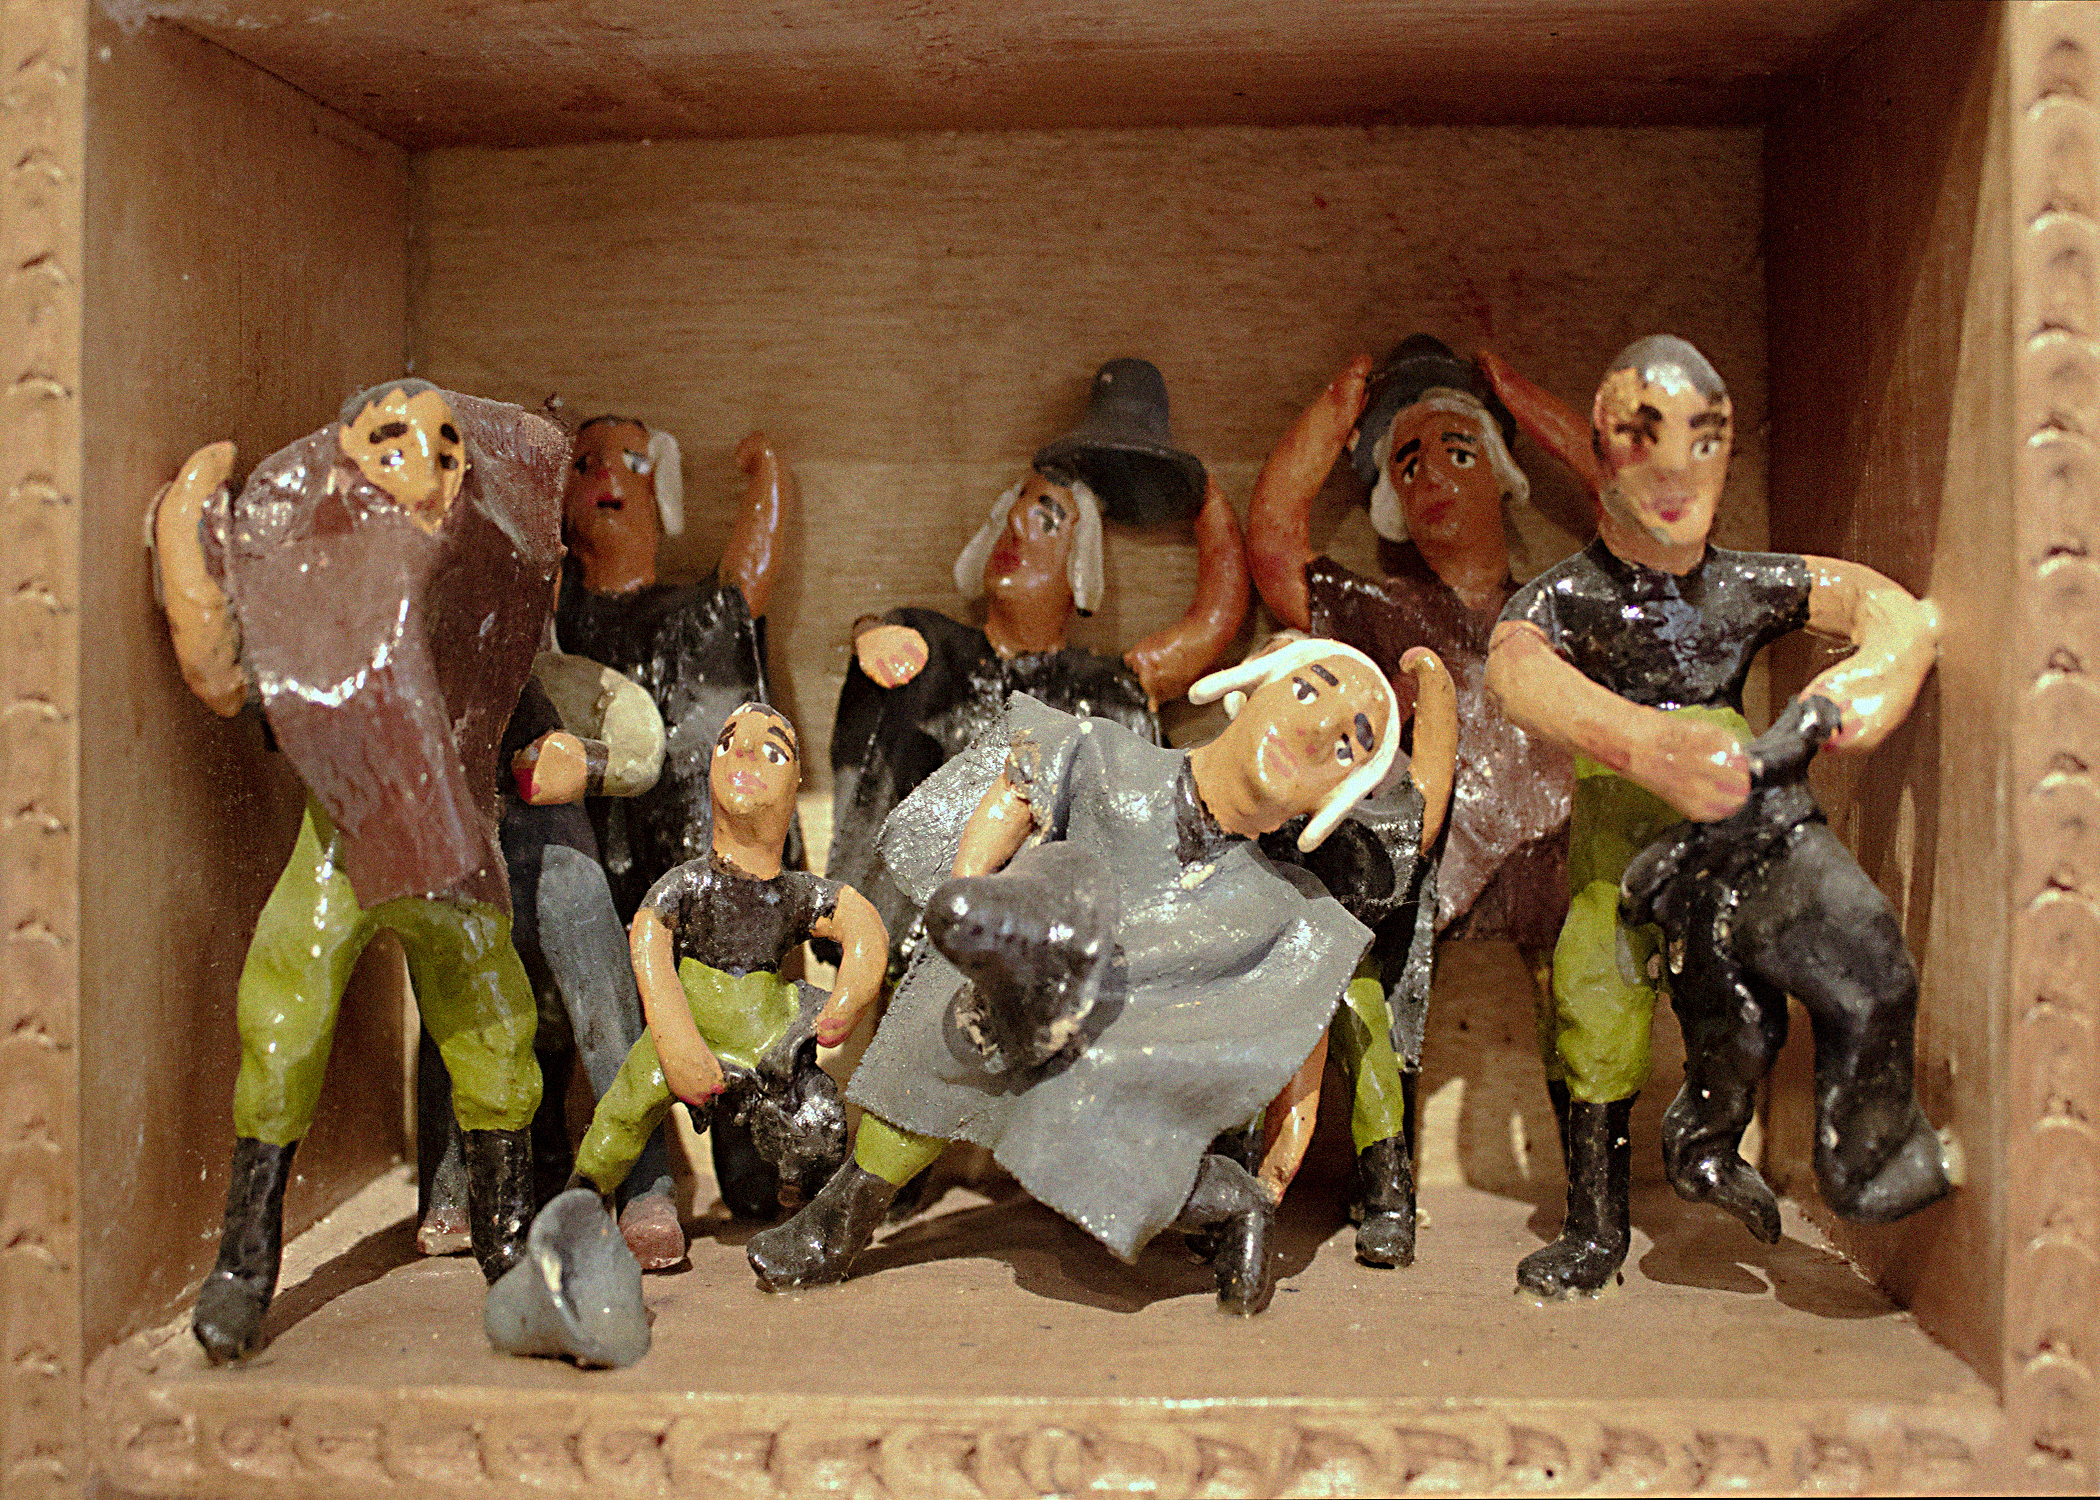 A scene called Disguise within a retablo. A group of nine humanlike figurines are portrayed as dressing themselves in grey and brown ponchos and grey hats.